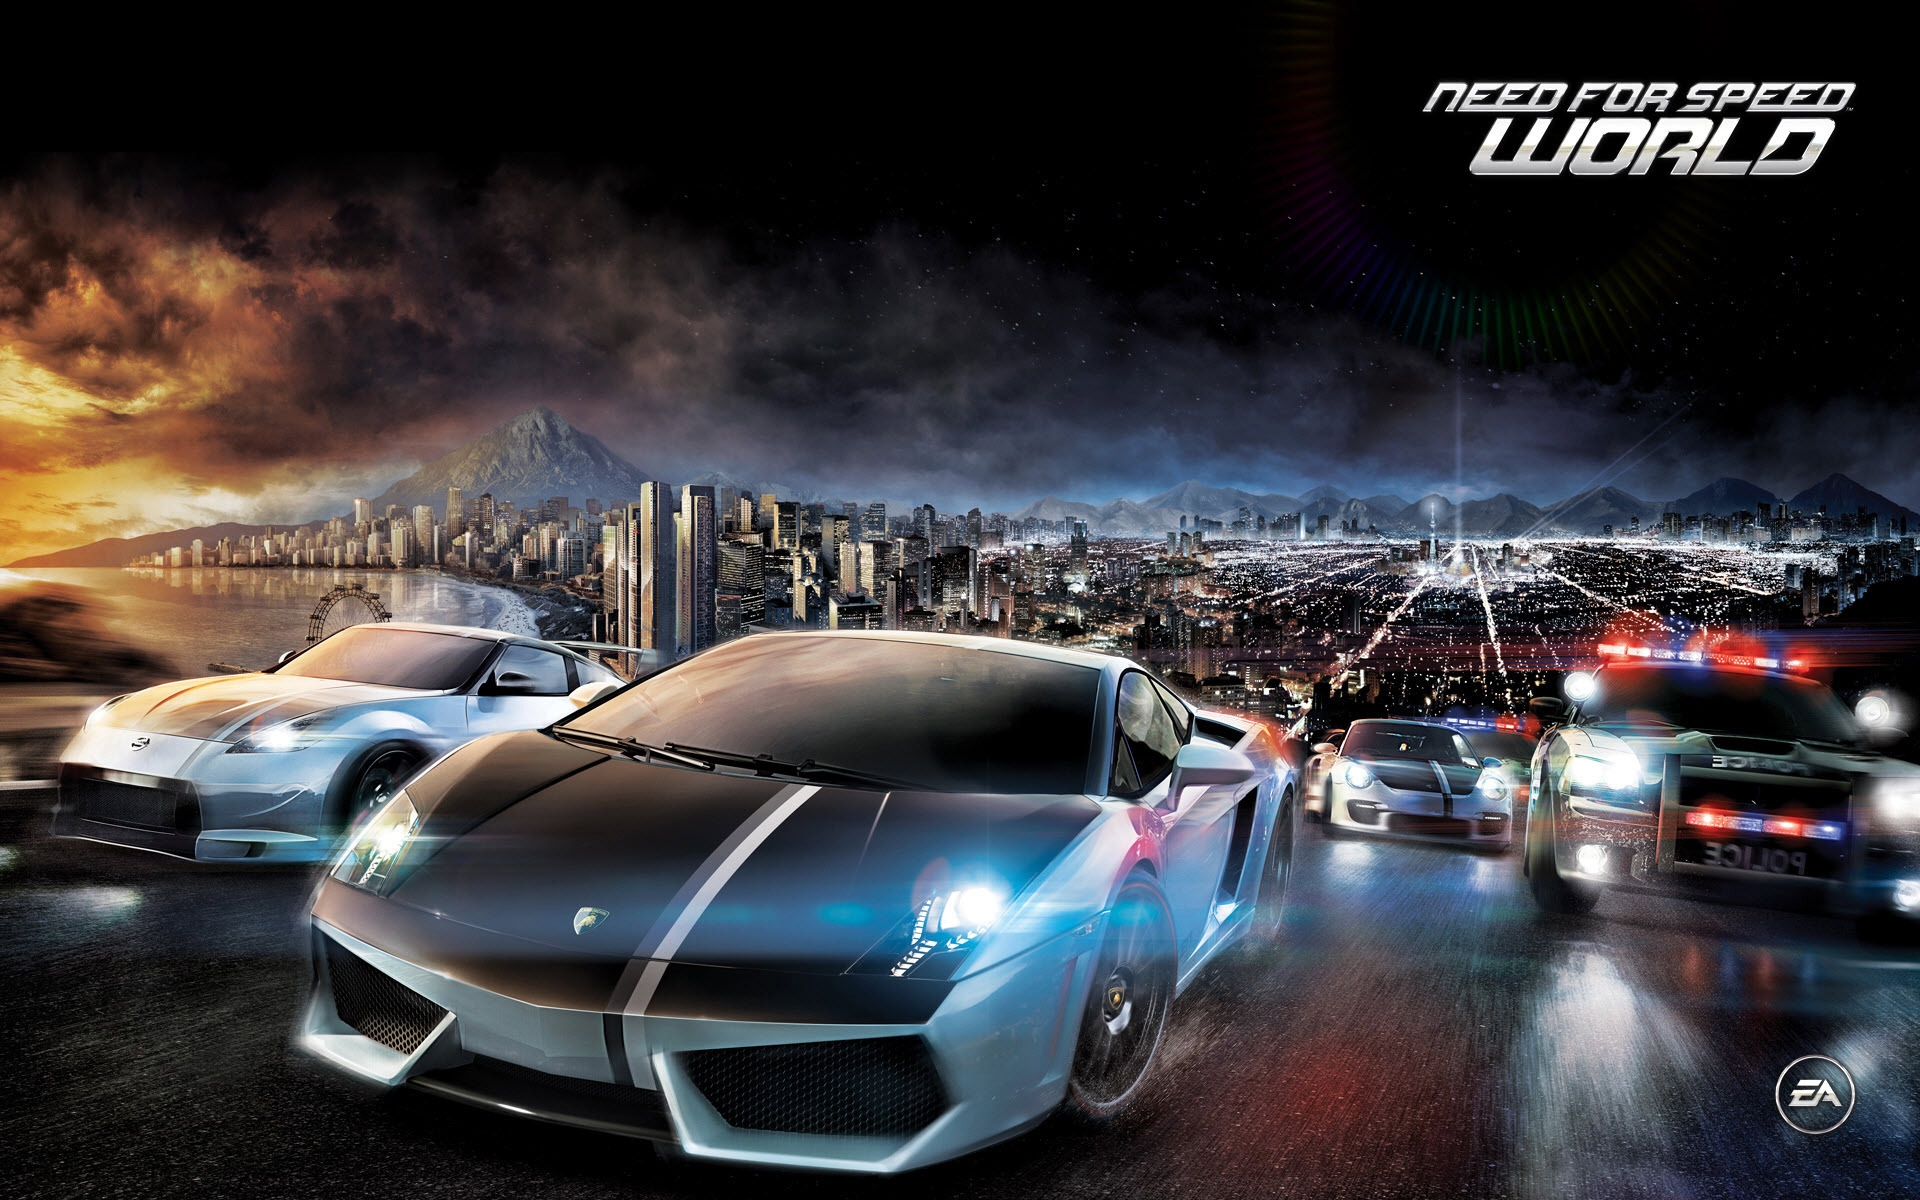 Need for Speed World for 1920 x 1200 widescreen resolution